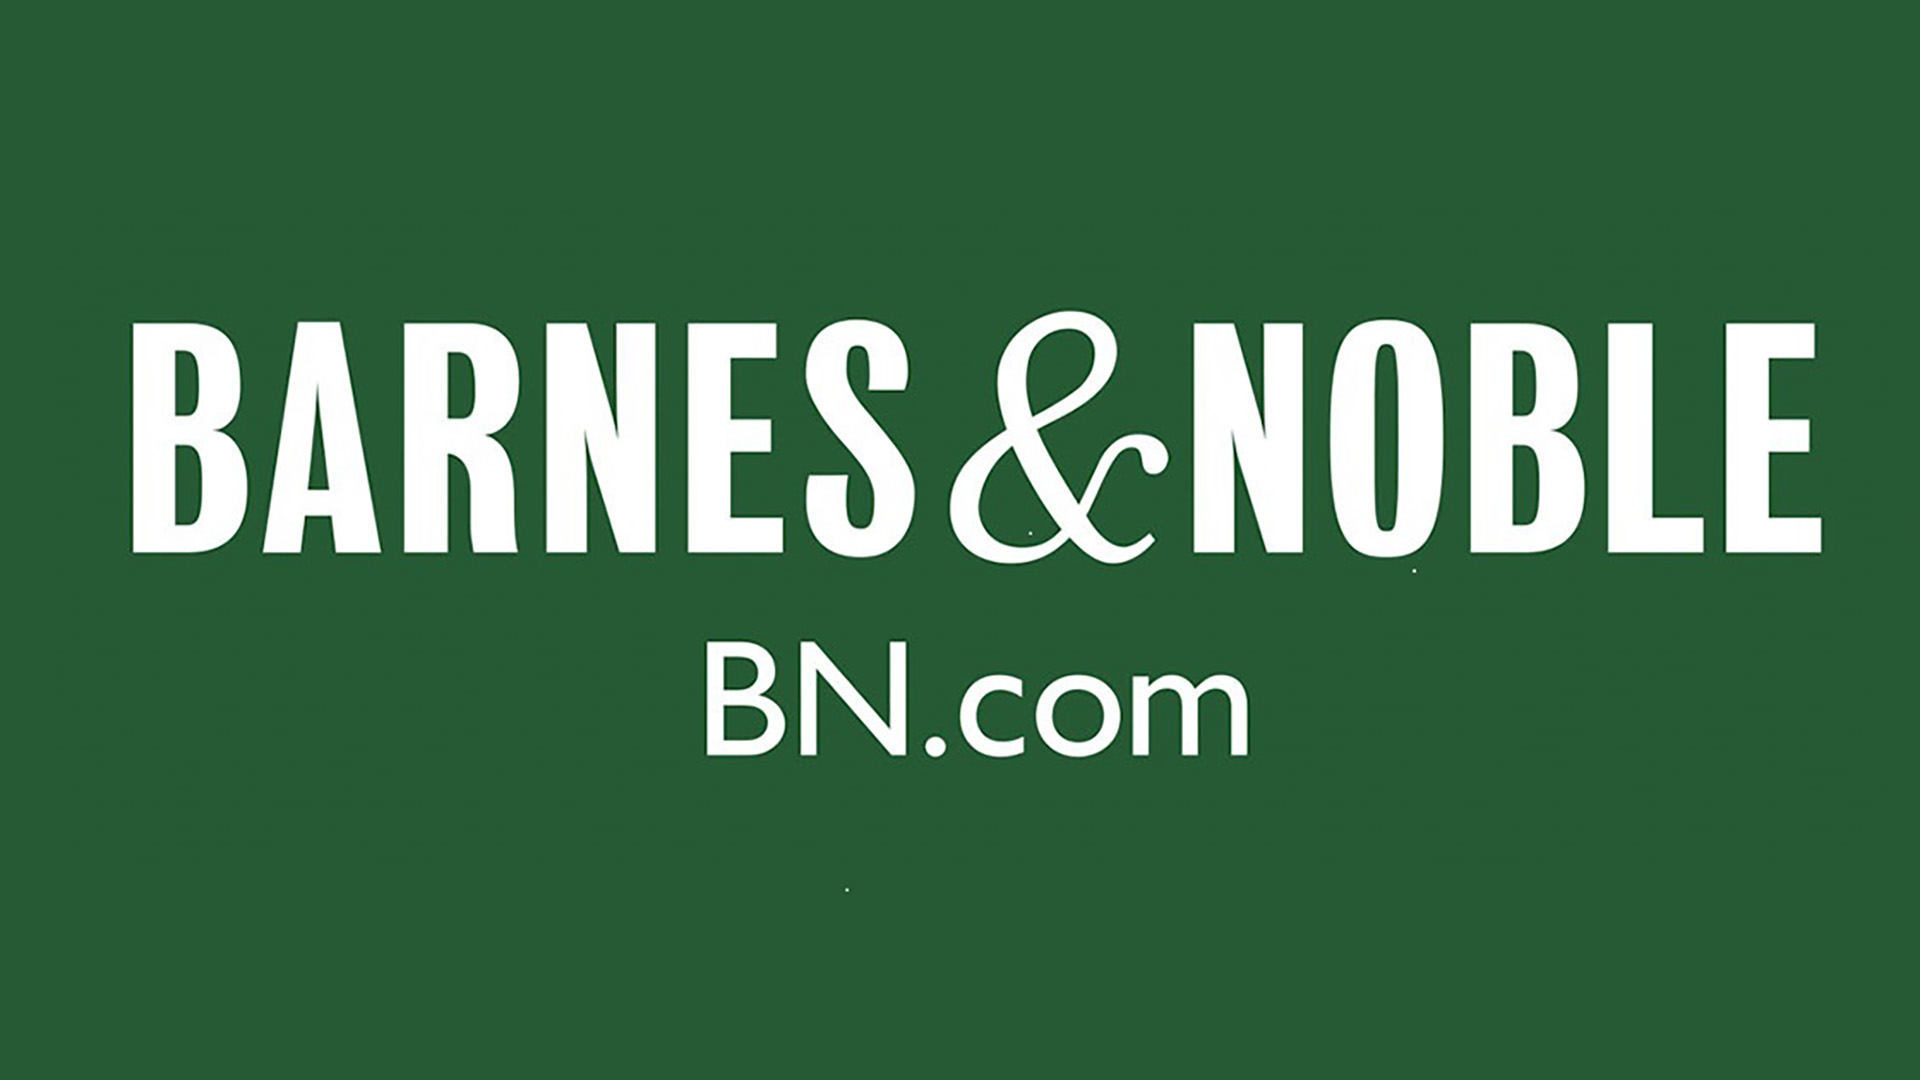 Barnes & Noble to donate a portion of August sales to Panhandle PBS